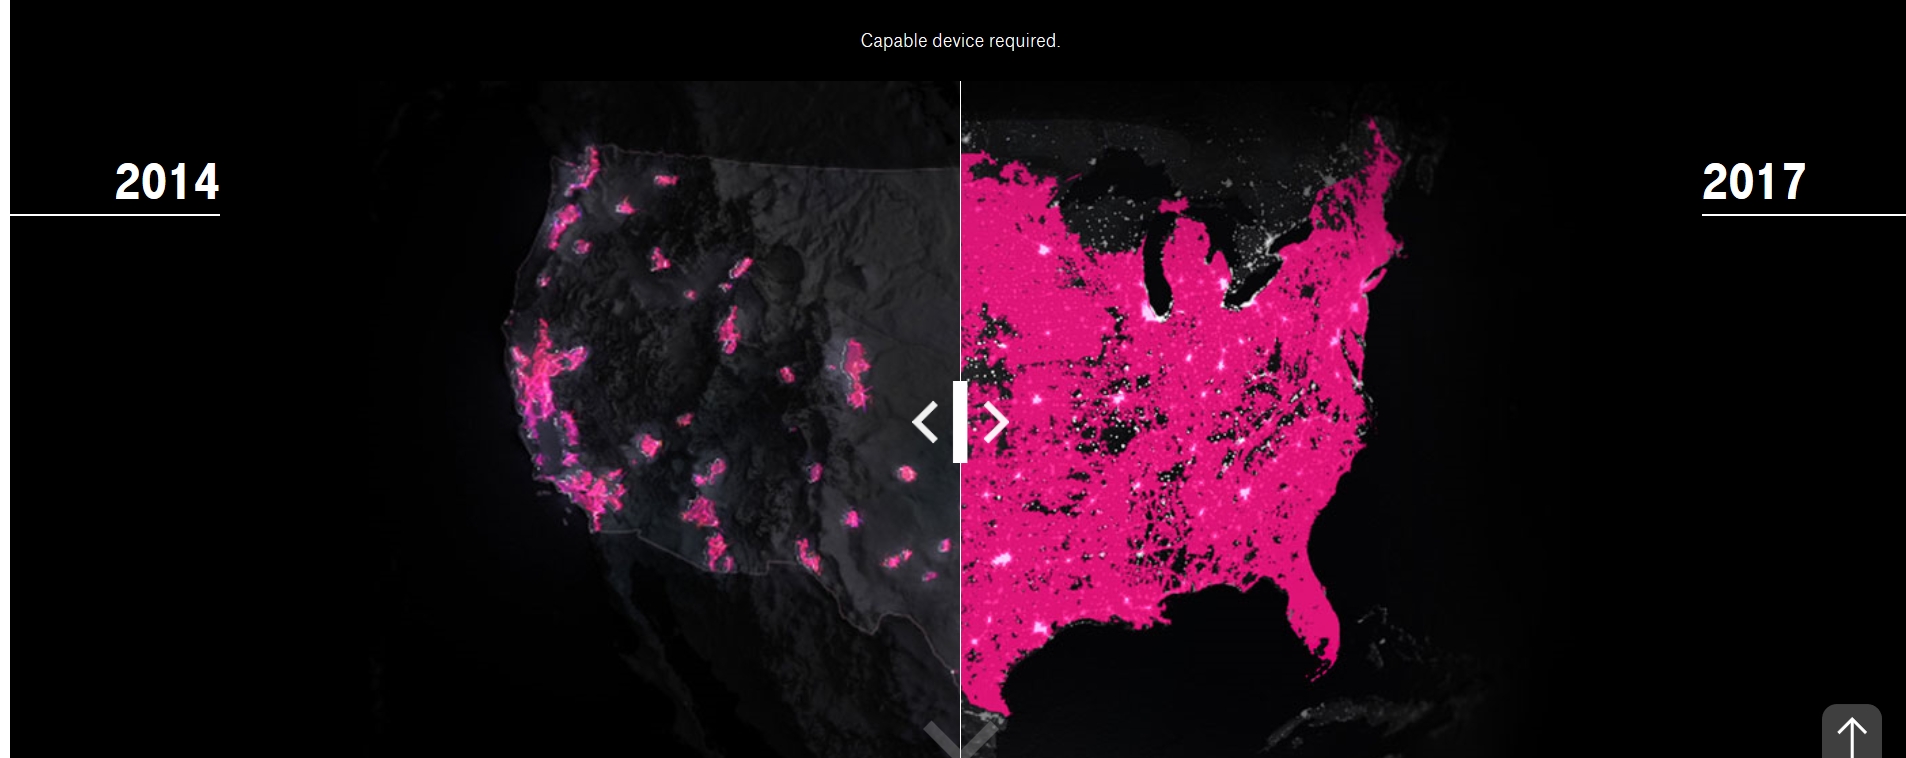 tmobile coverage map iphone 8 600mhz 4g 5g